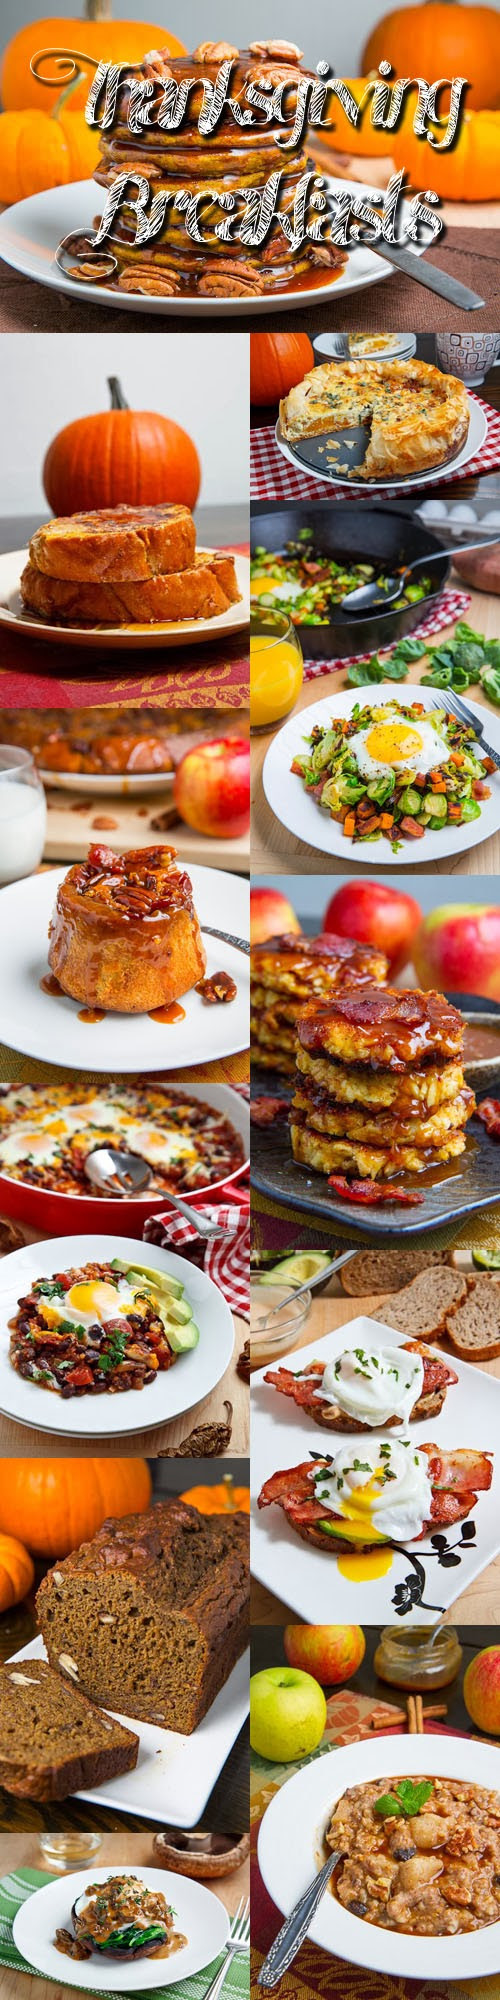 Breakfast On Thanksgiving Day  Thanksgiving Breakfast Recipes on Closet Cooking